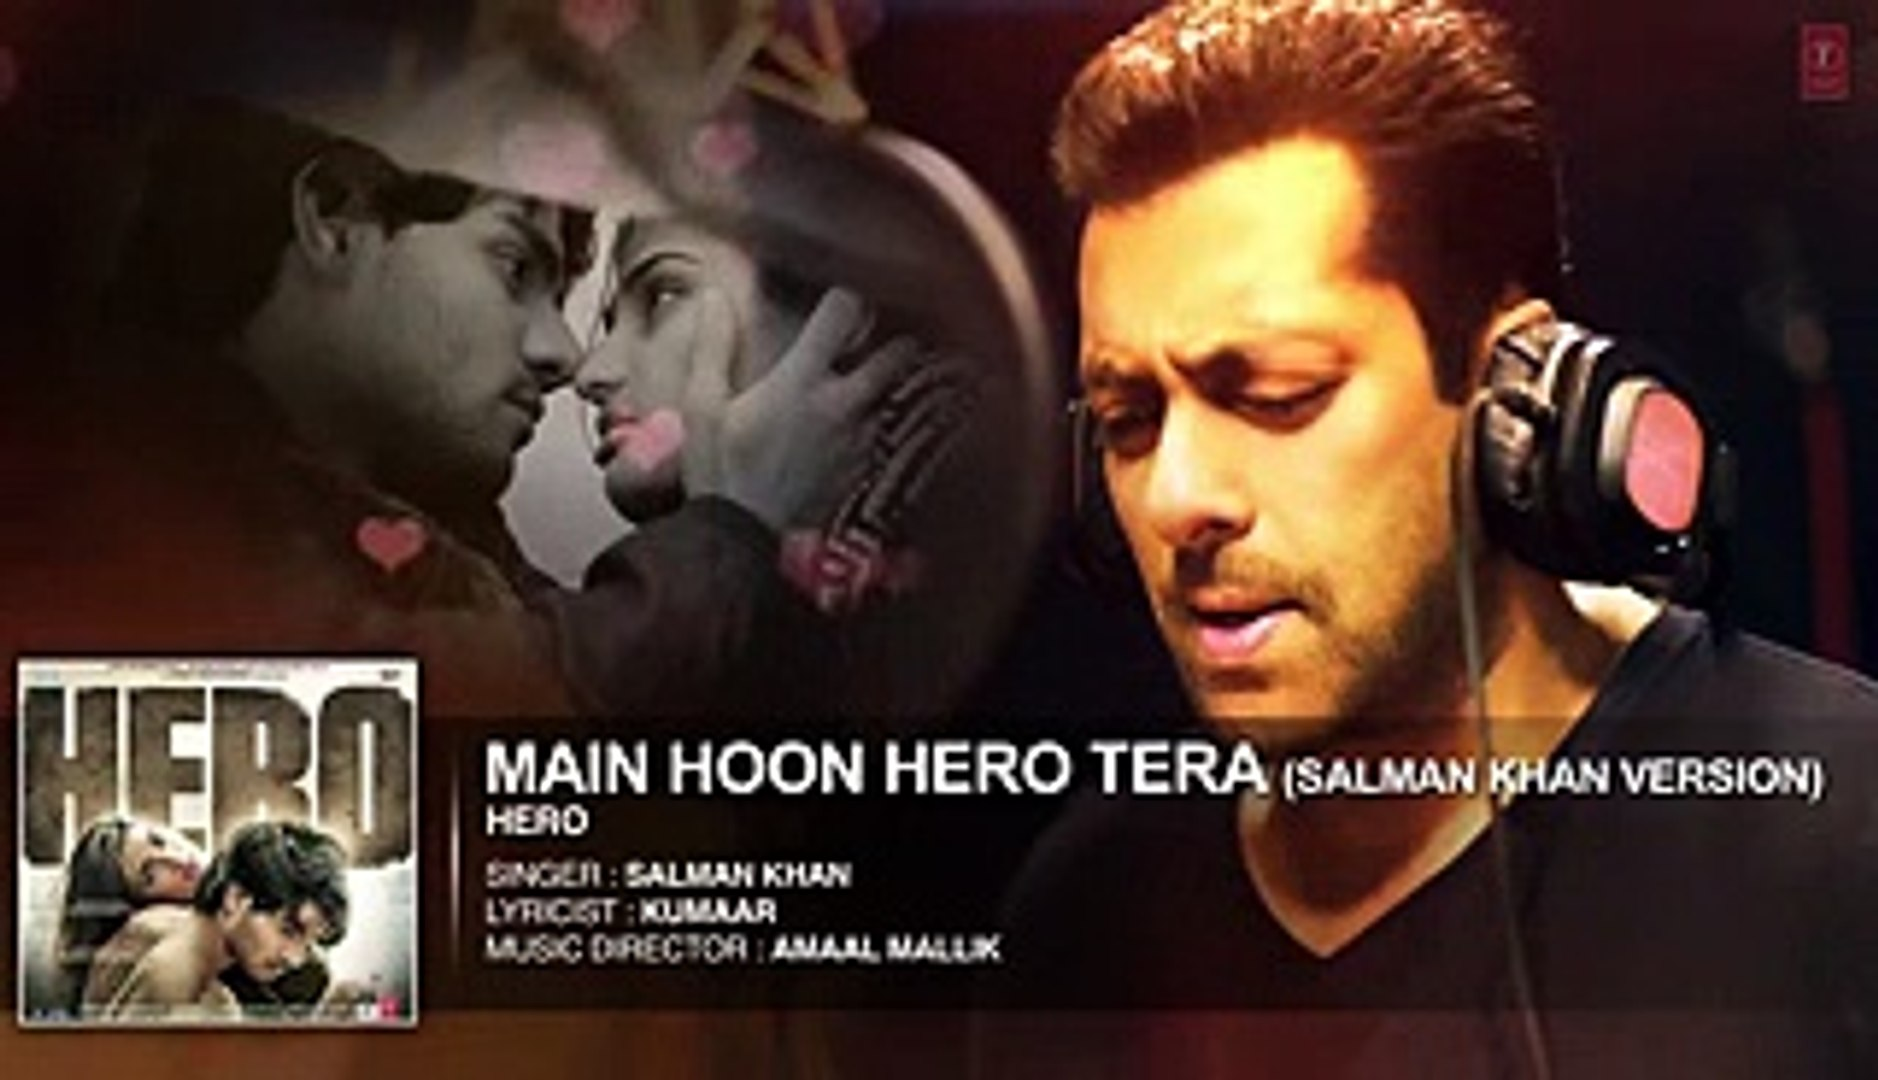 Main Hoon Hero Tera Full HD Song - Salman Khan 2015 - Hero [2015] New Love Song 2015